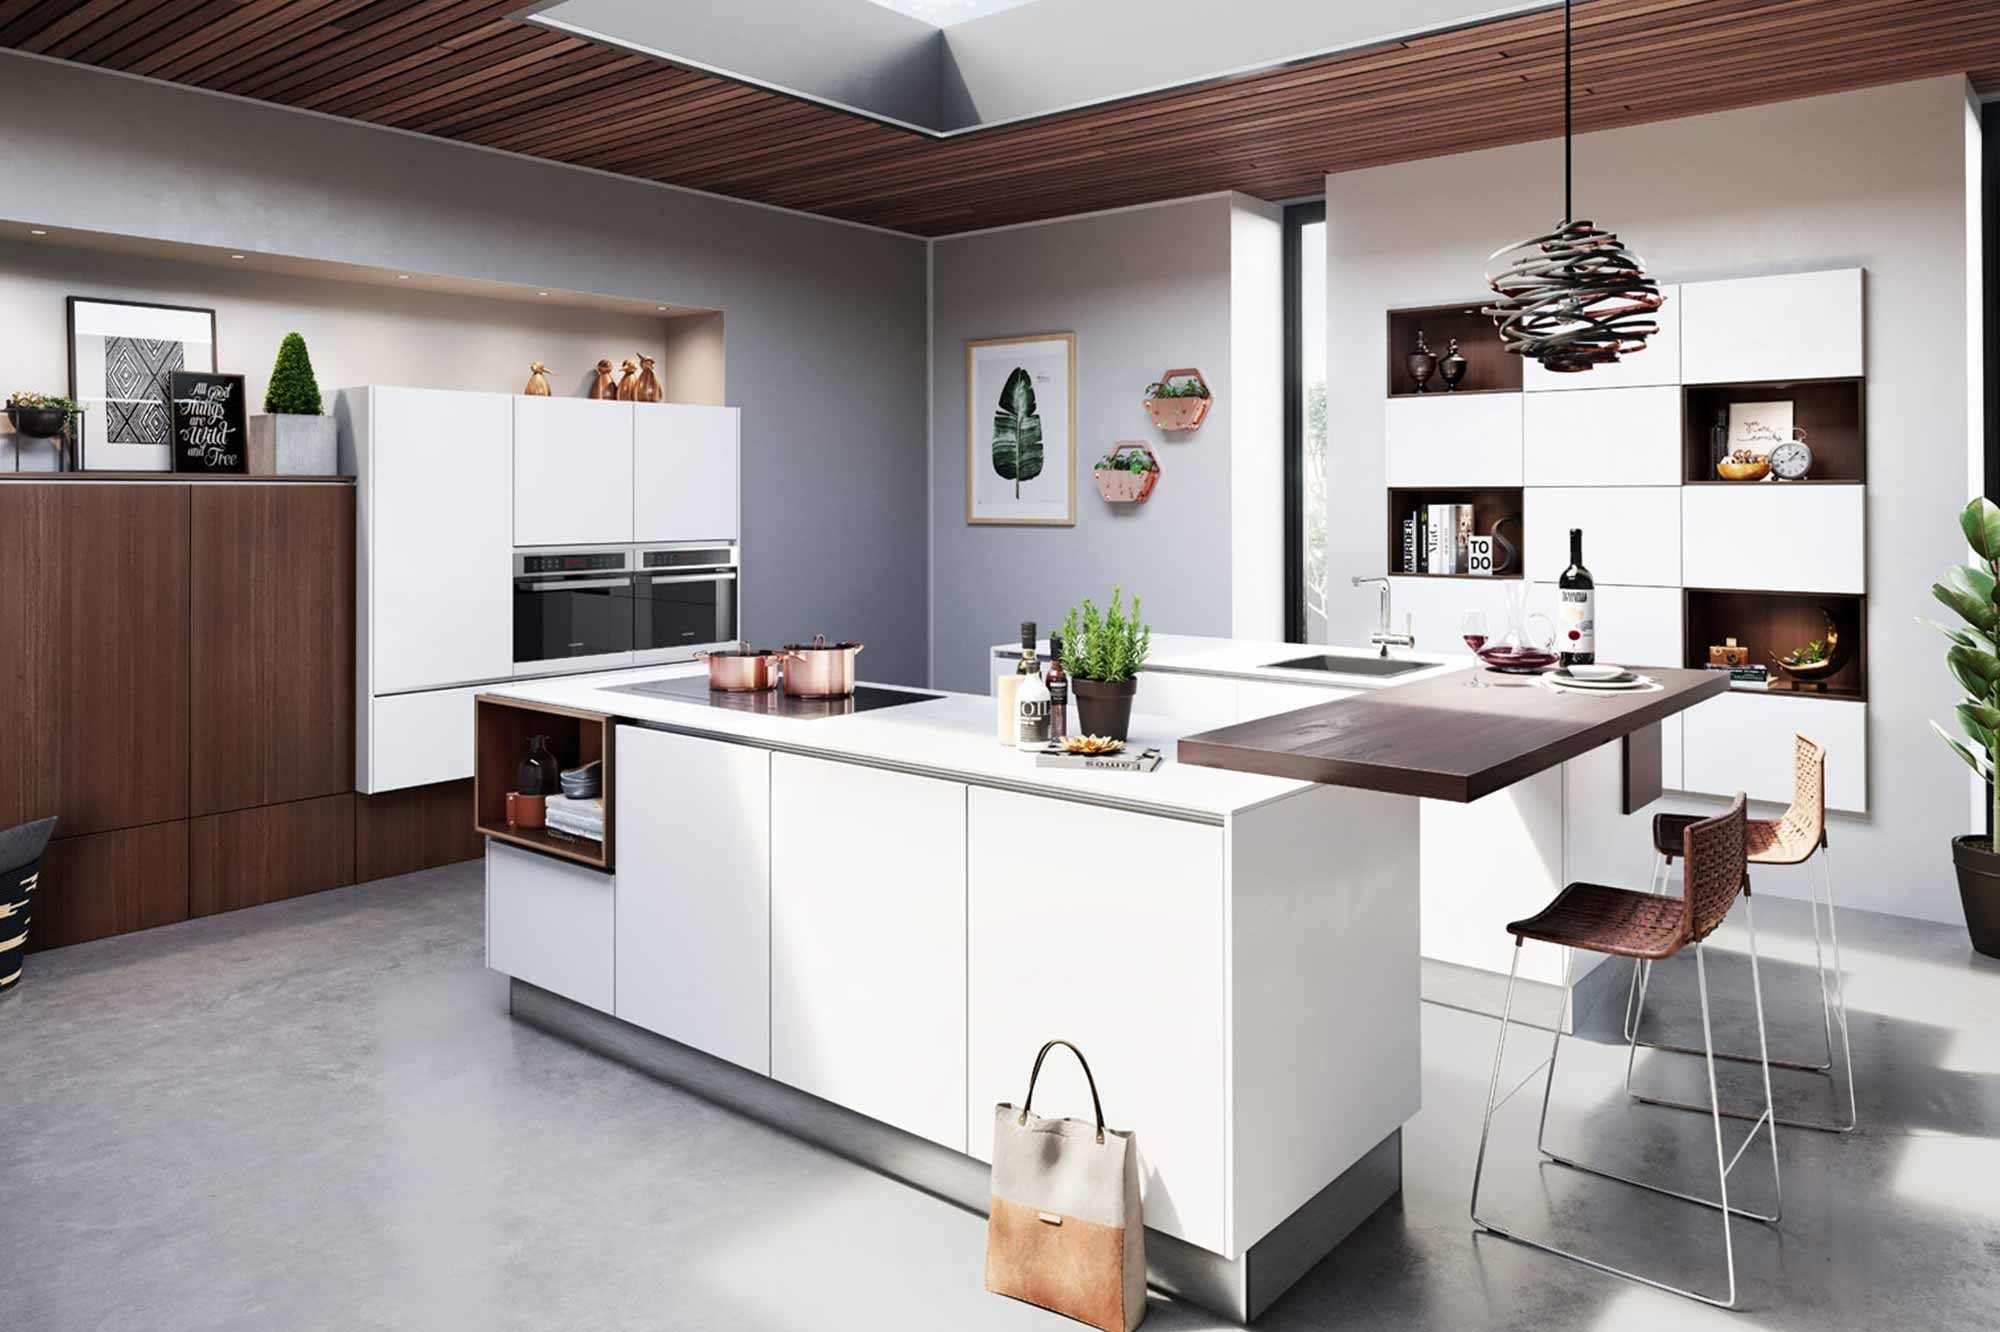 Get Free High Quality HD Wallpapers German Kitchens Glasgow Direct